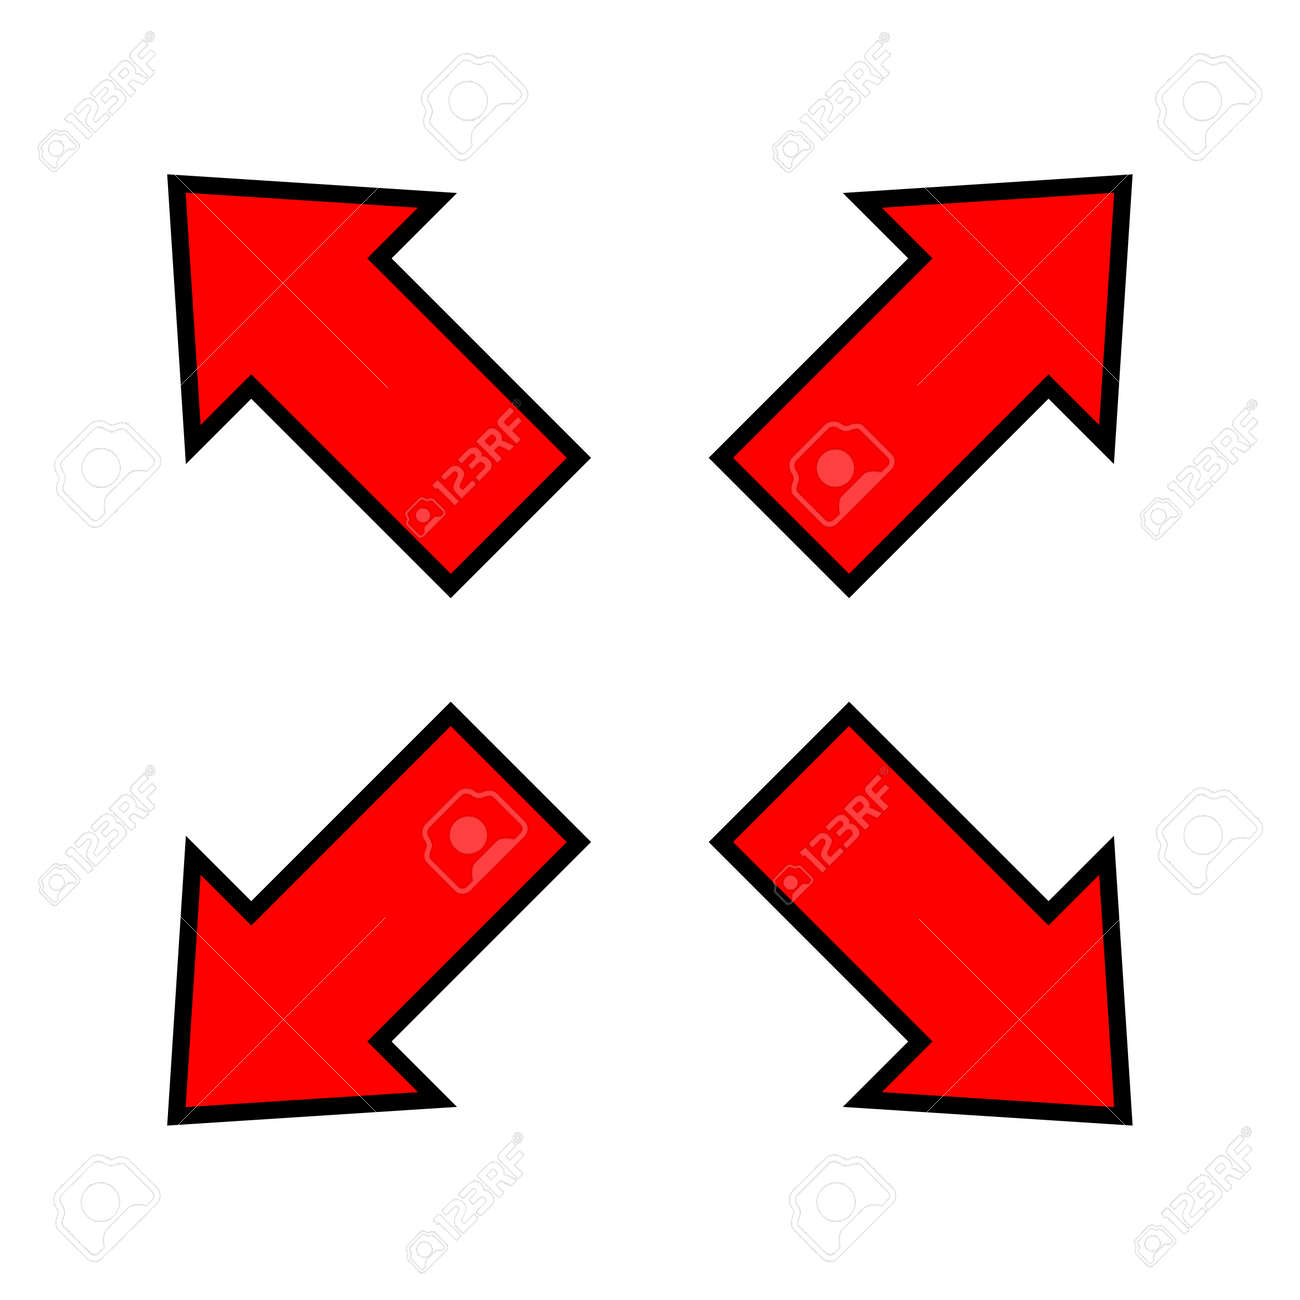 red arrow and diagonal arrow sign for map, arrow button for graphic game, arrow for direction - 169183465